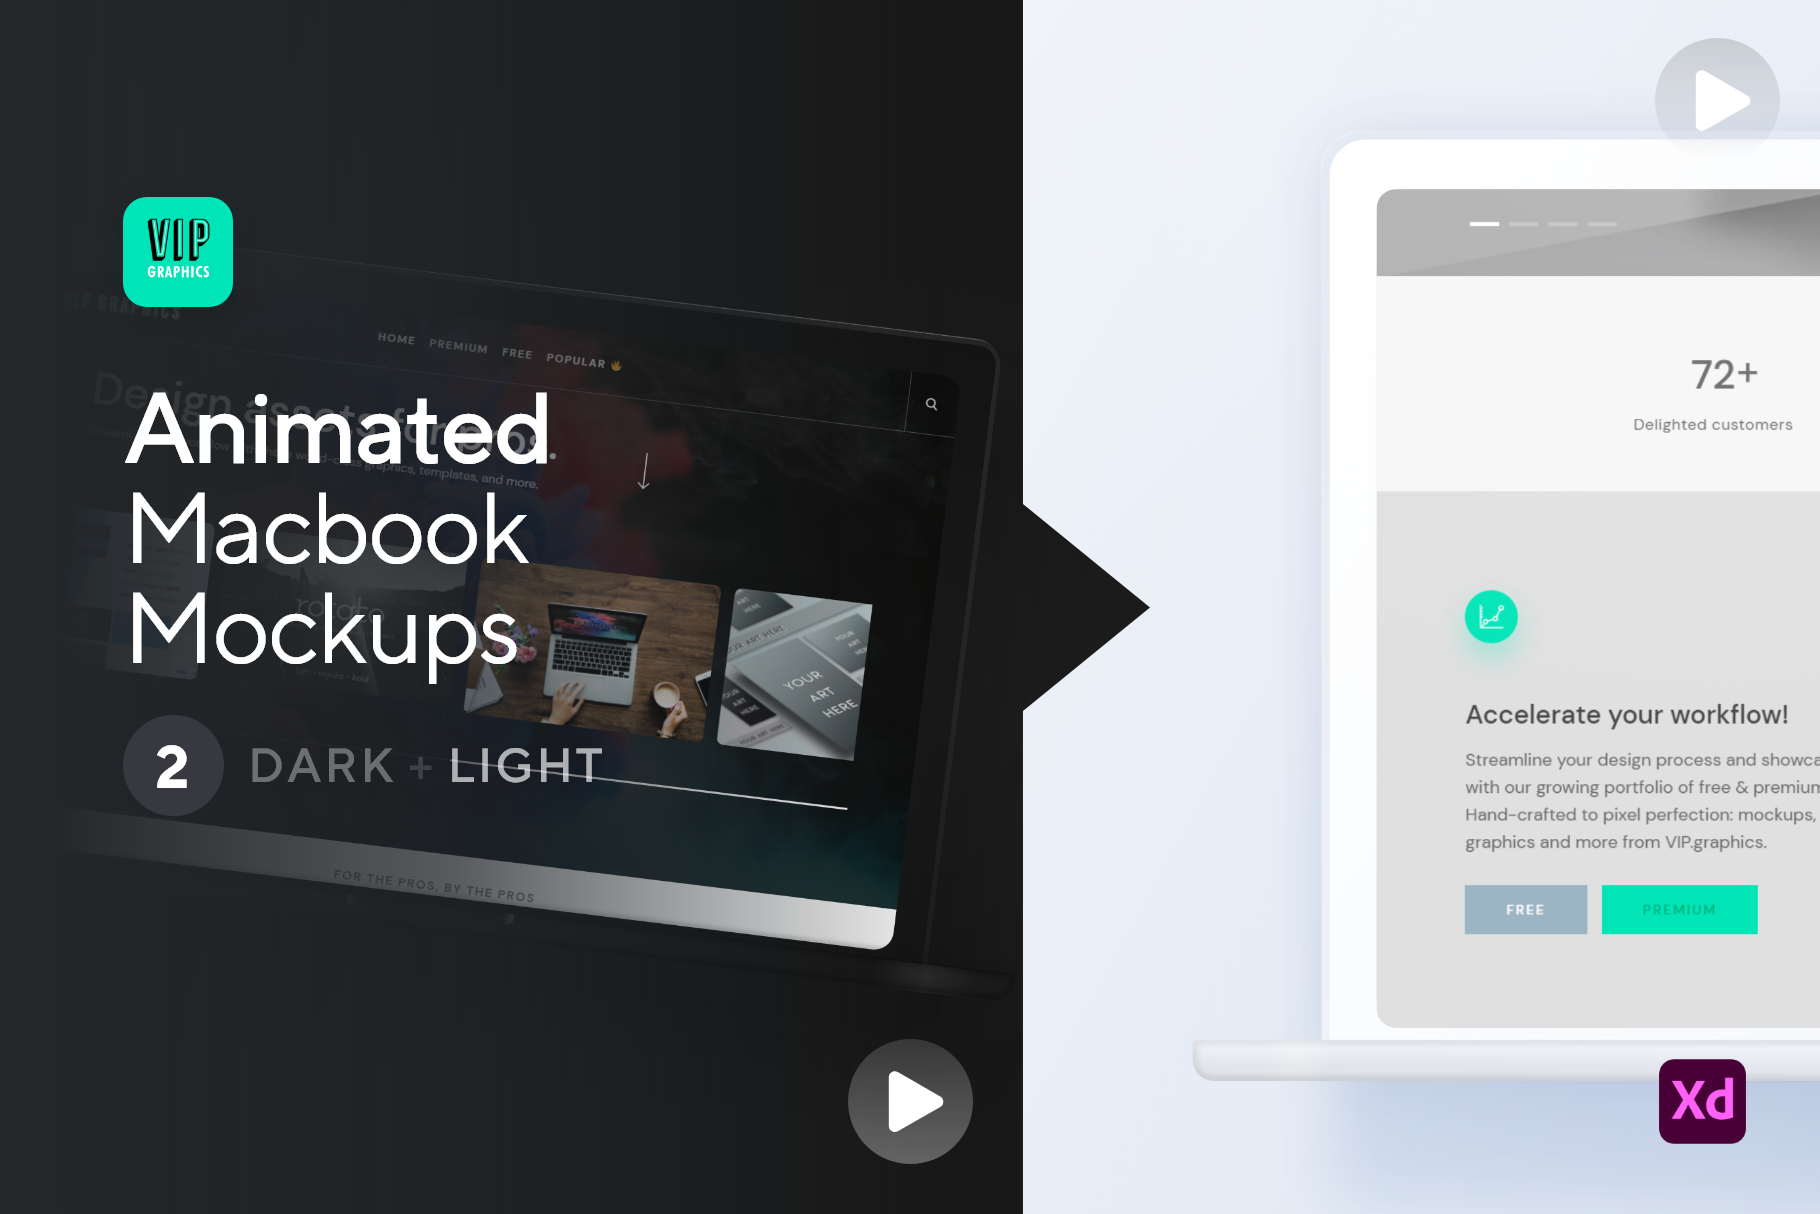 Animated Macbook - Video Mockup - Scrolling Laptop (for Adobe XD) | VIP.graphics: Just download, then drag-n-drop!